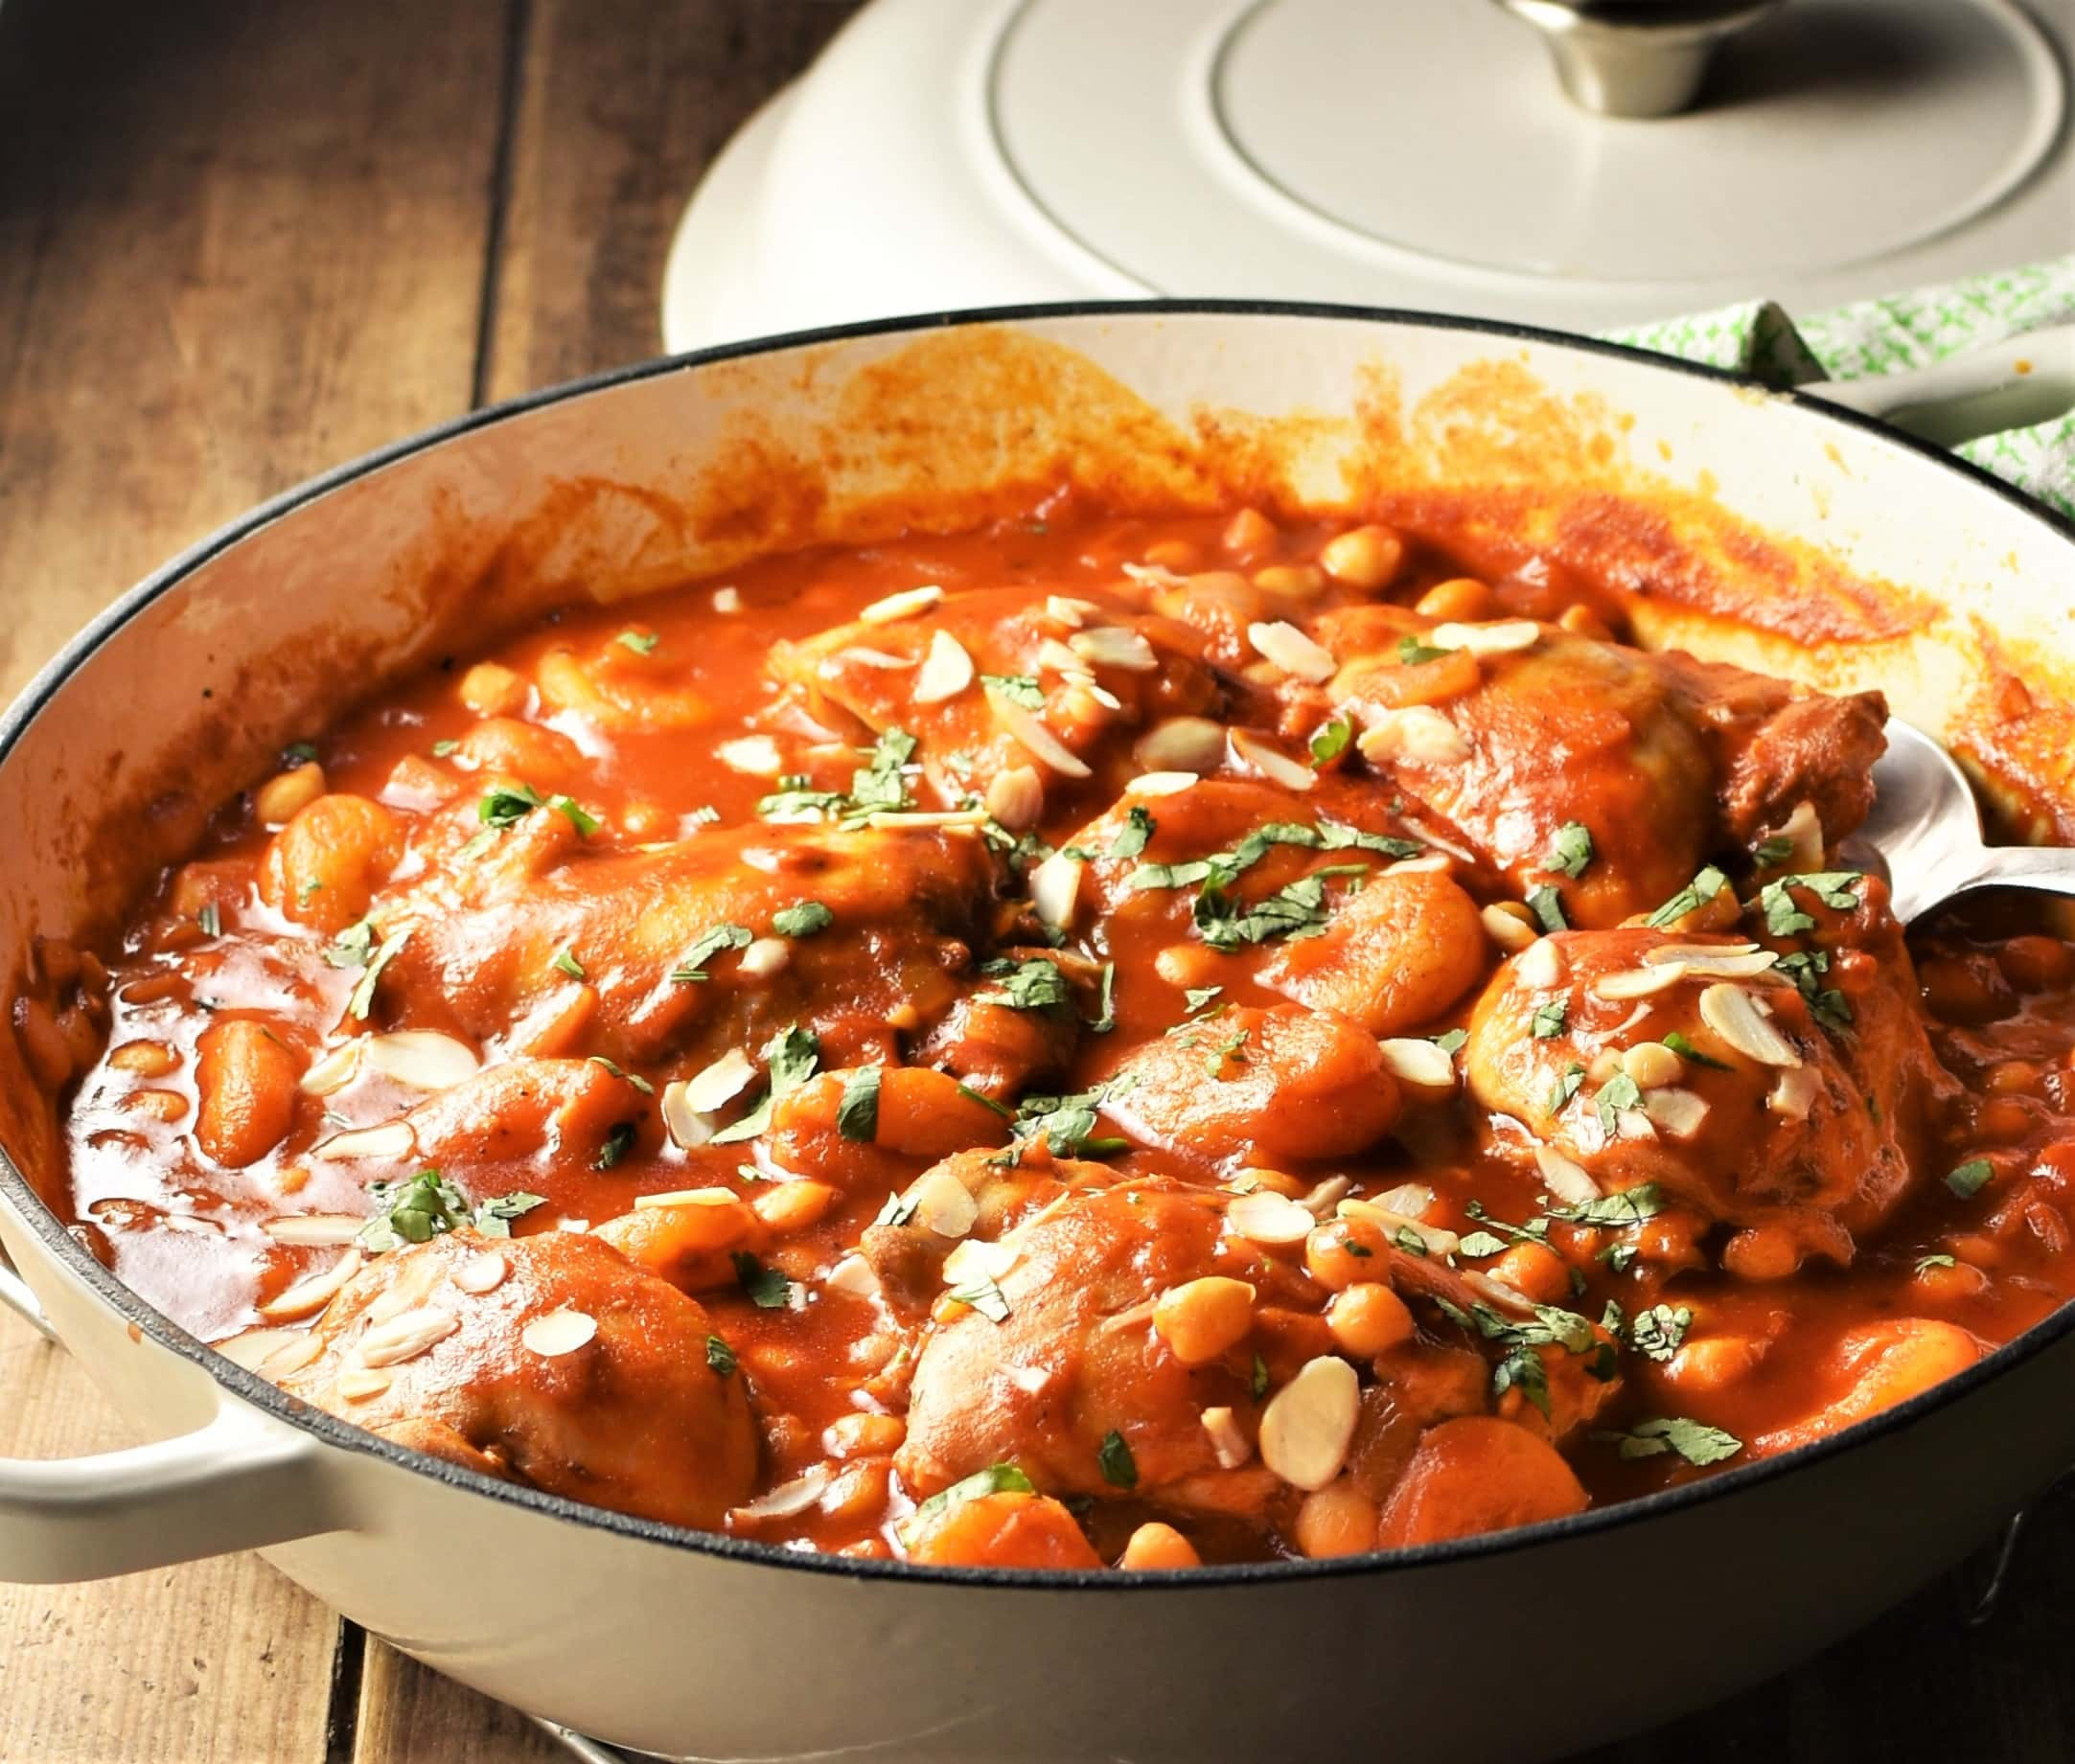 Side view of chicken thighs in tomato sauce with chickpeas in large shallow dish with lid in background.